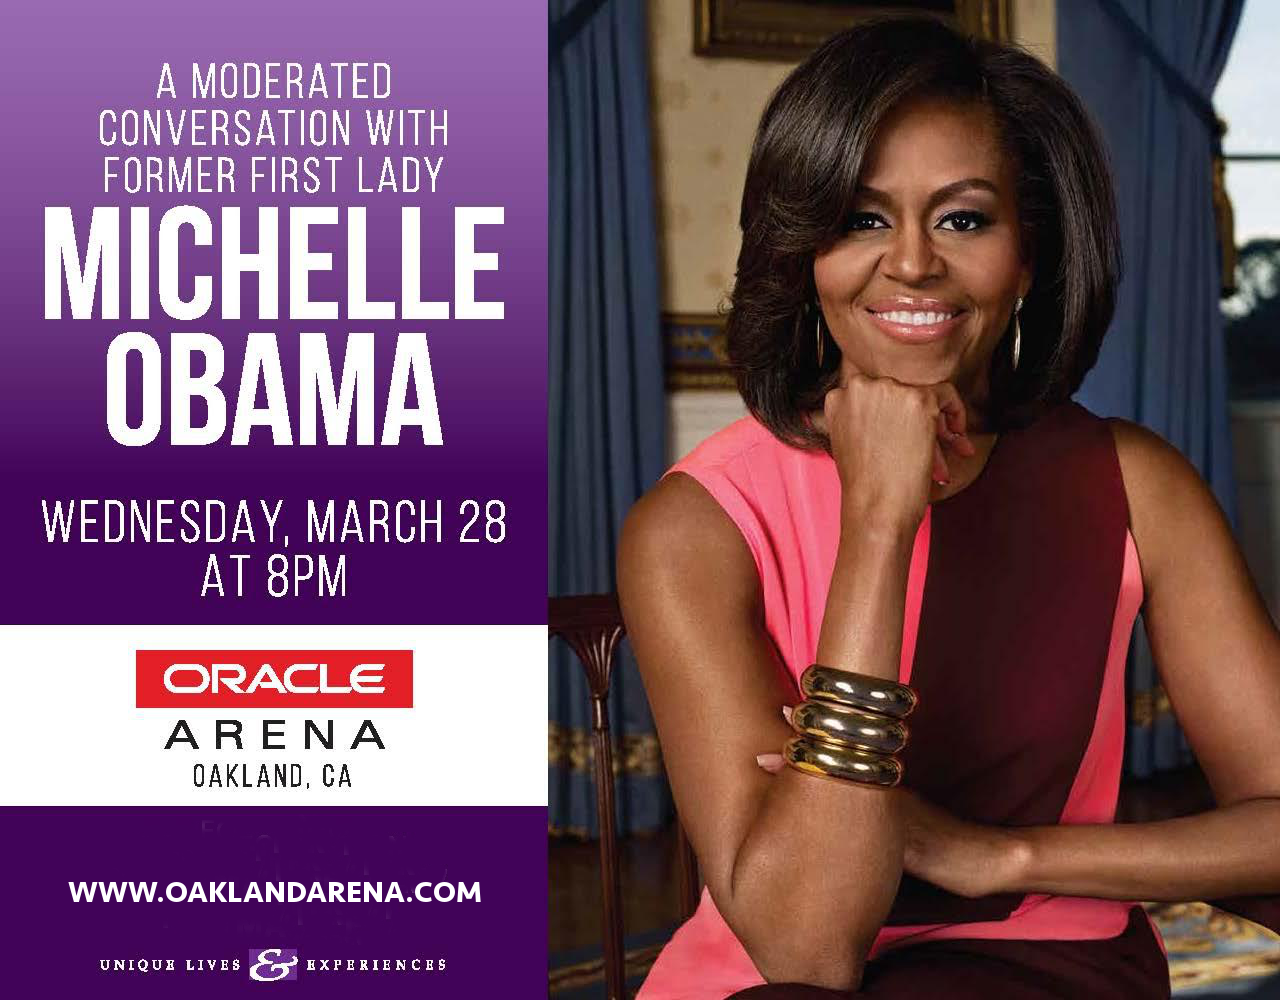 Michelle Obama at Oracle Arena